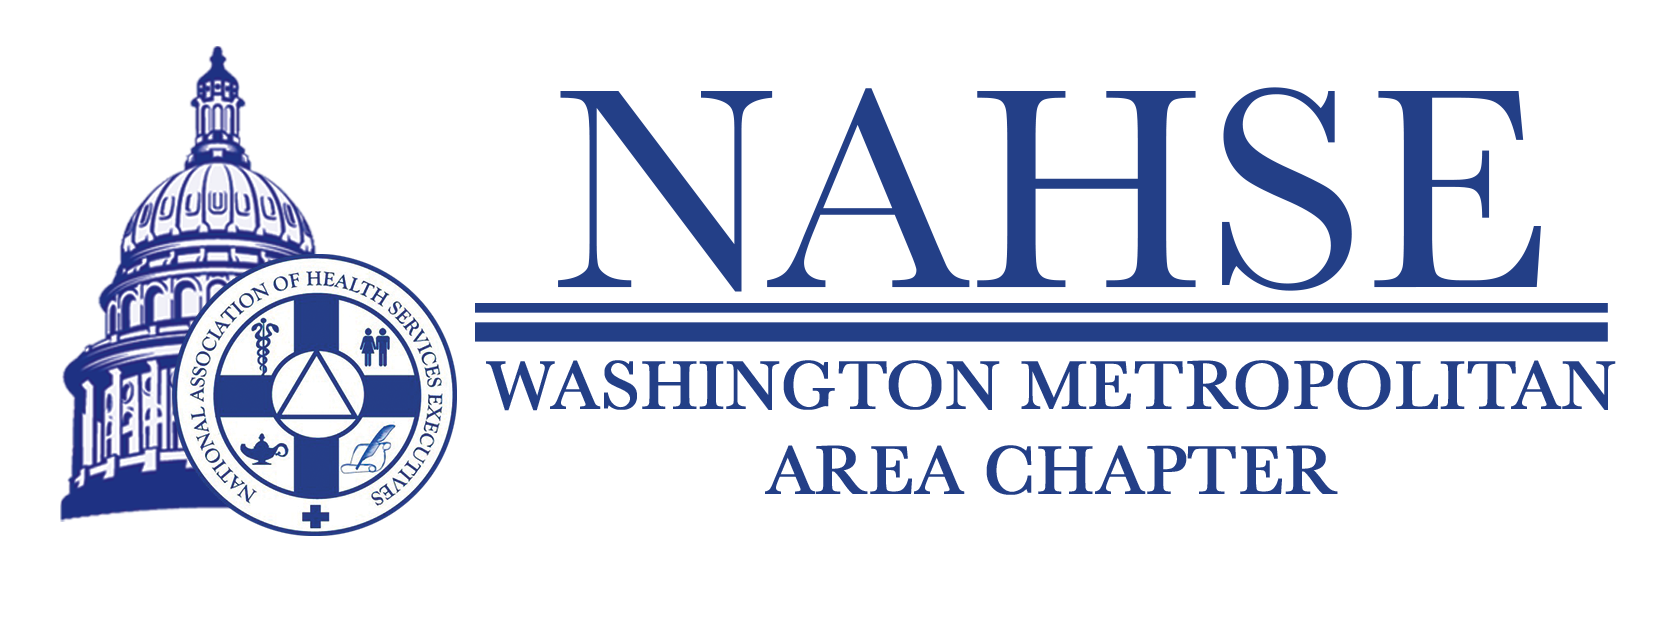 NAHSE-Washington Metropolitan Area Chapter